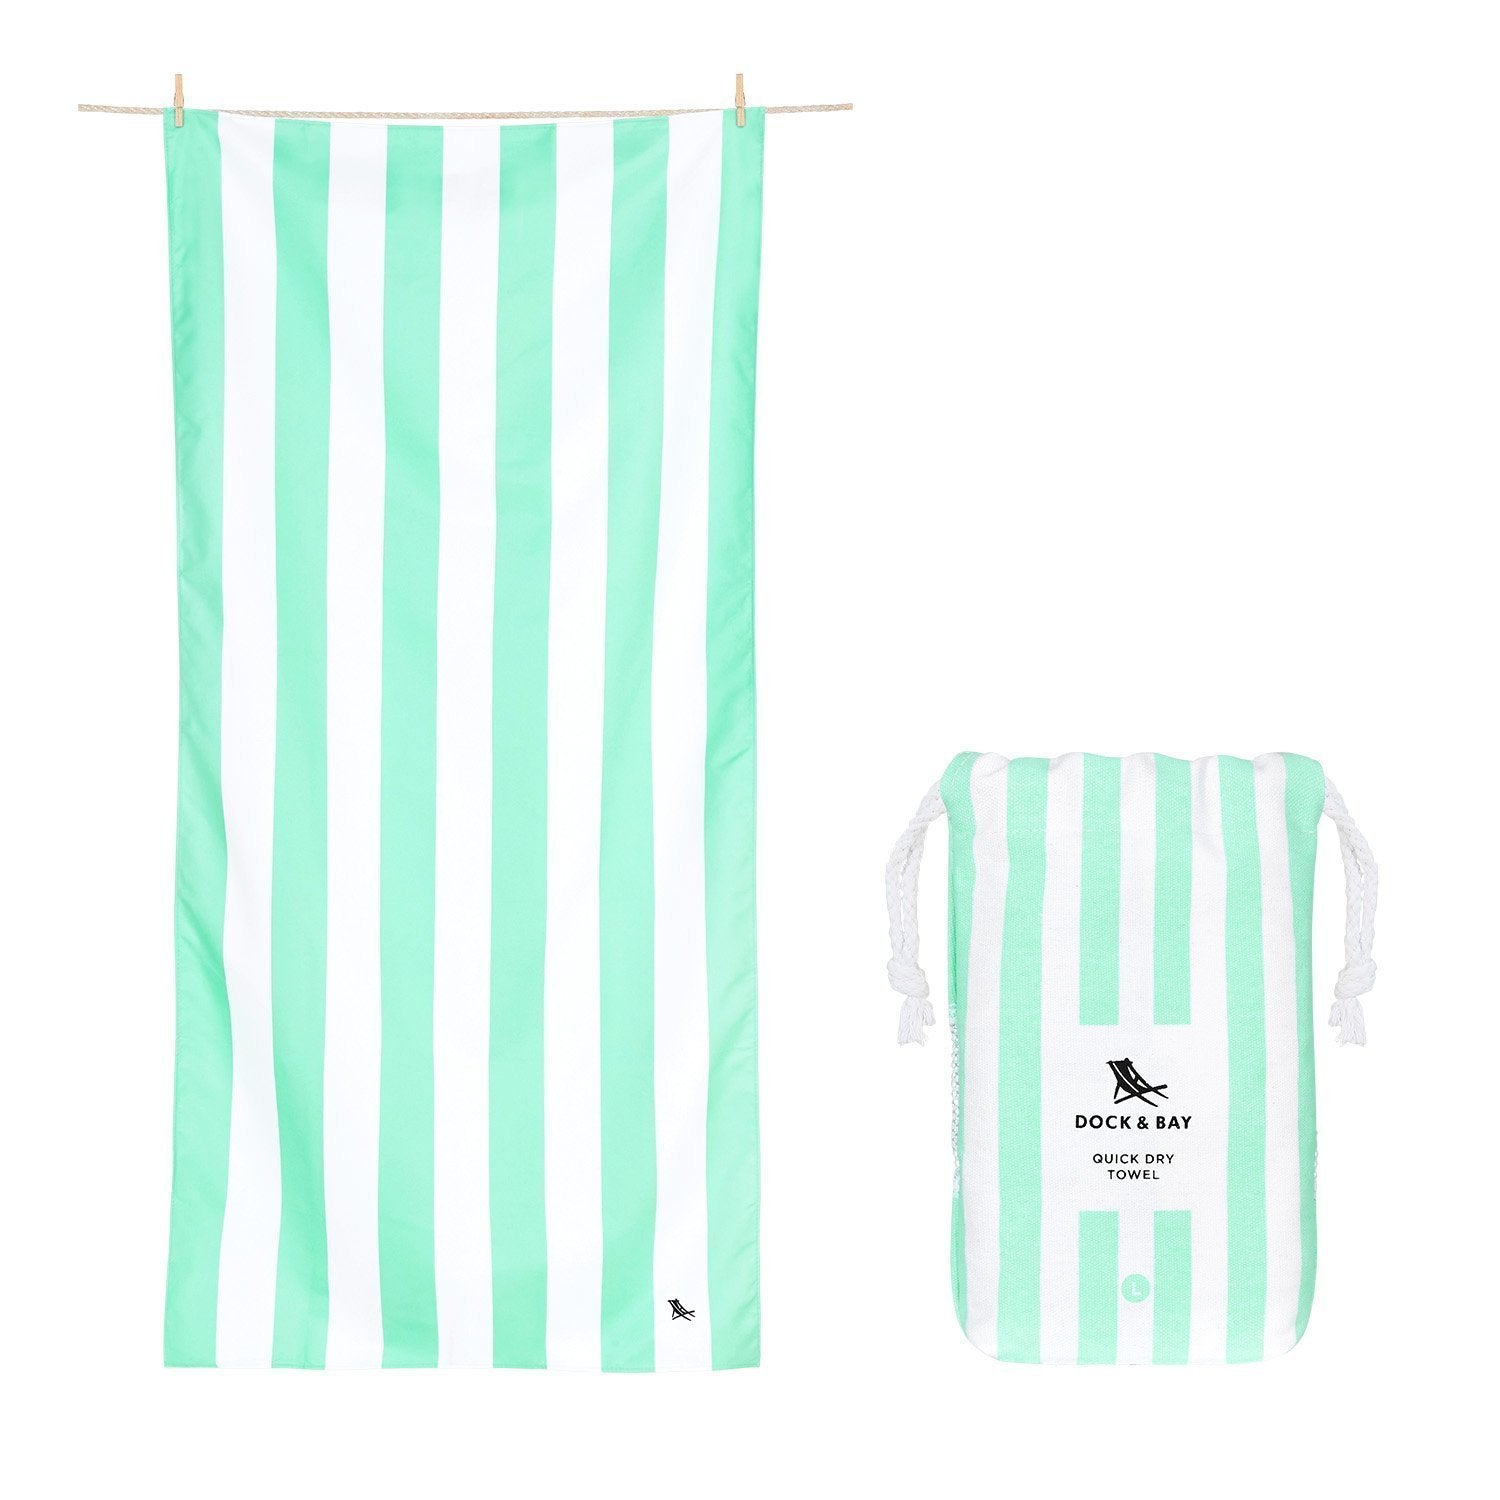 Dock & Bay Cabana Light Towel in Narabeen Green (2 sizes) - Extra Large